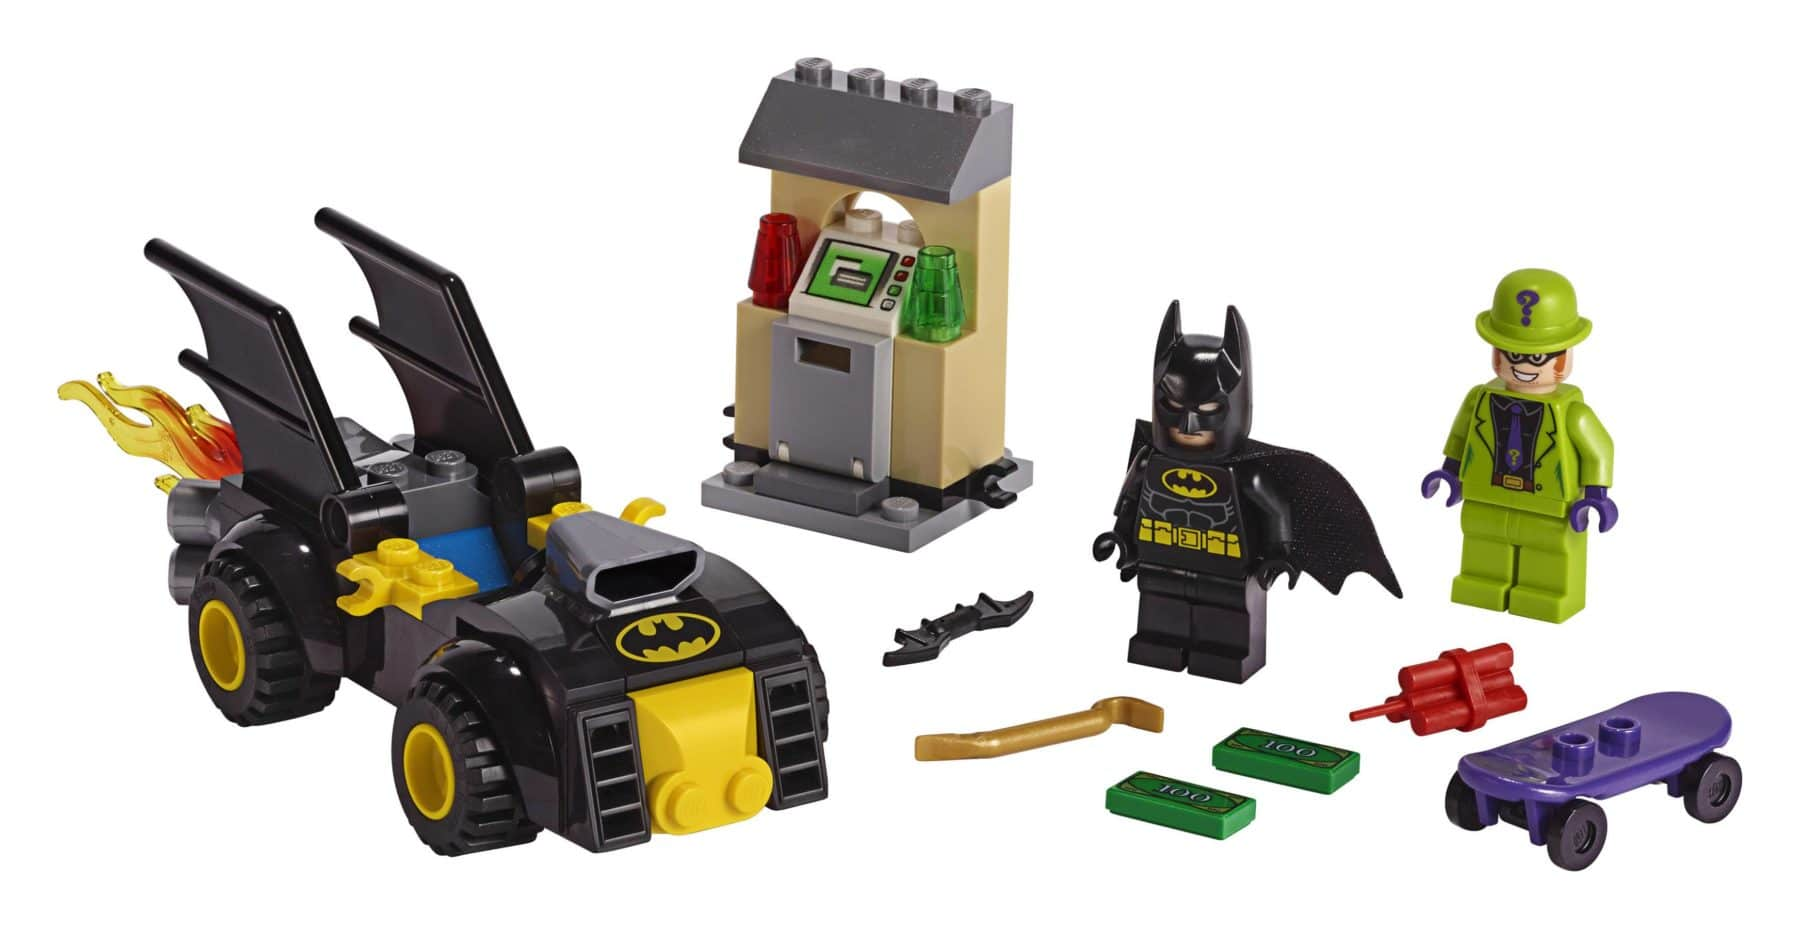 LEGO Batman 76137 Batman vs. The Riddler Robbery